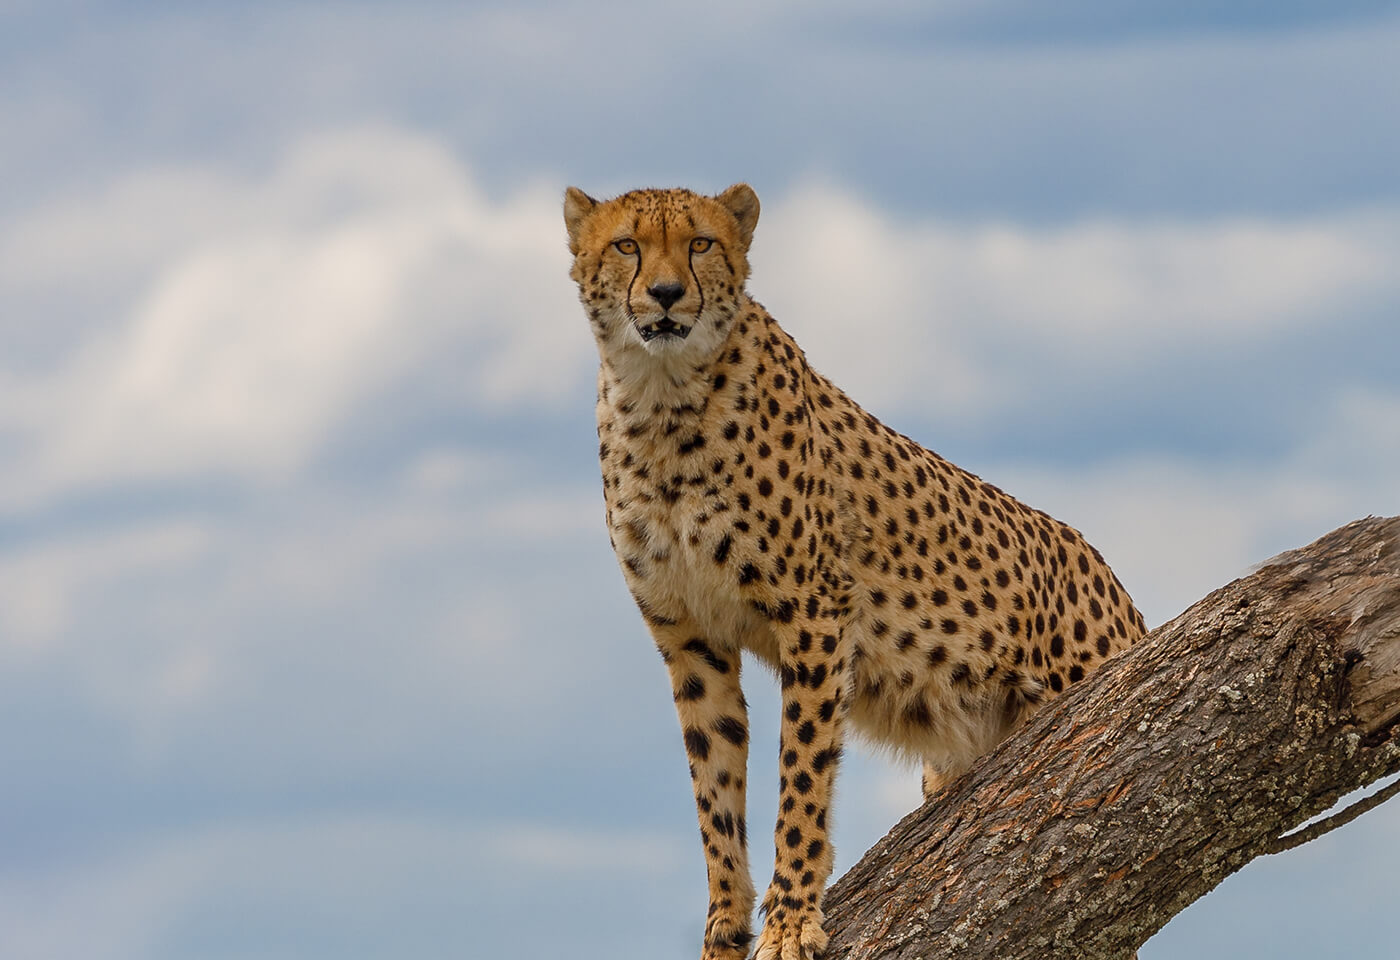 Image of cheetah taken by Kass Brumley at the Sydney Zoo